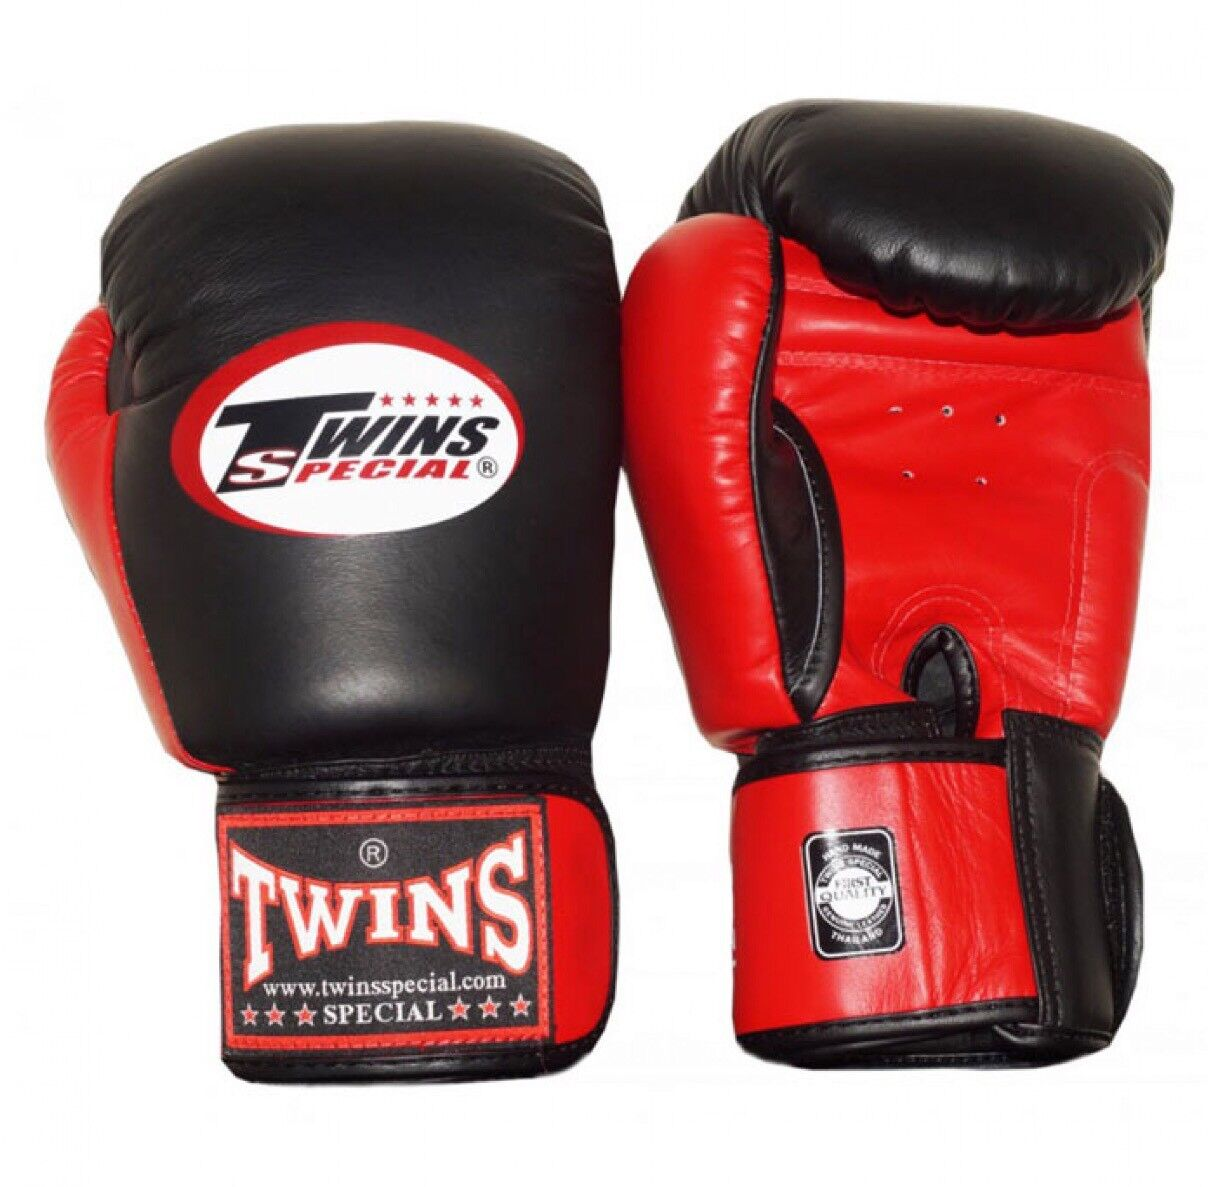 Twins Special Bgvl-3T Blk/ROT 10oz Muay Thai/ Boxing Gloves